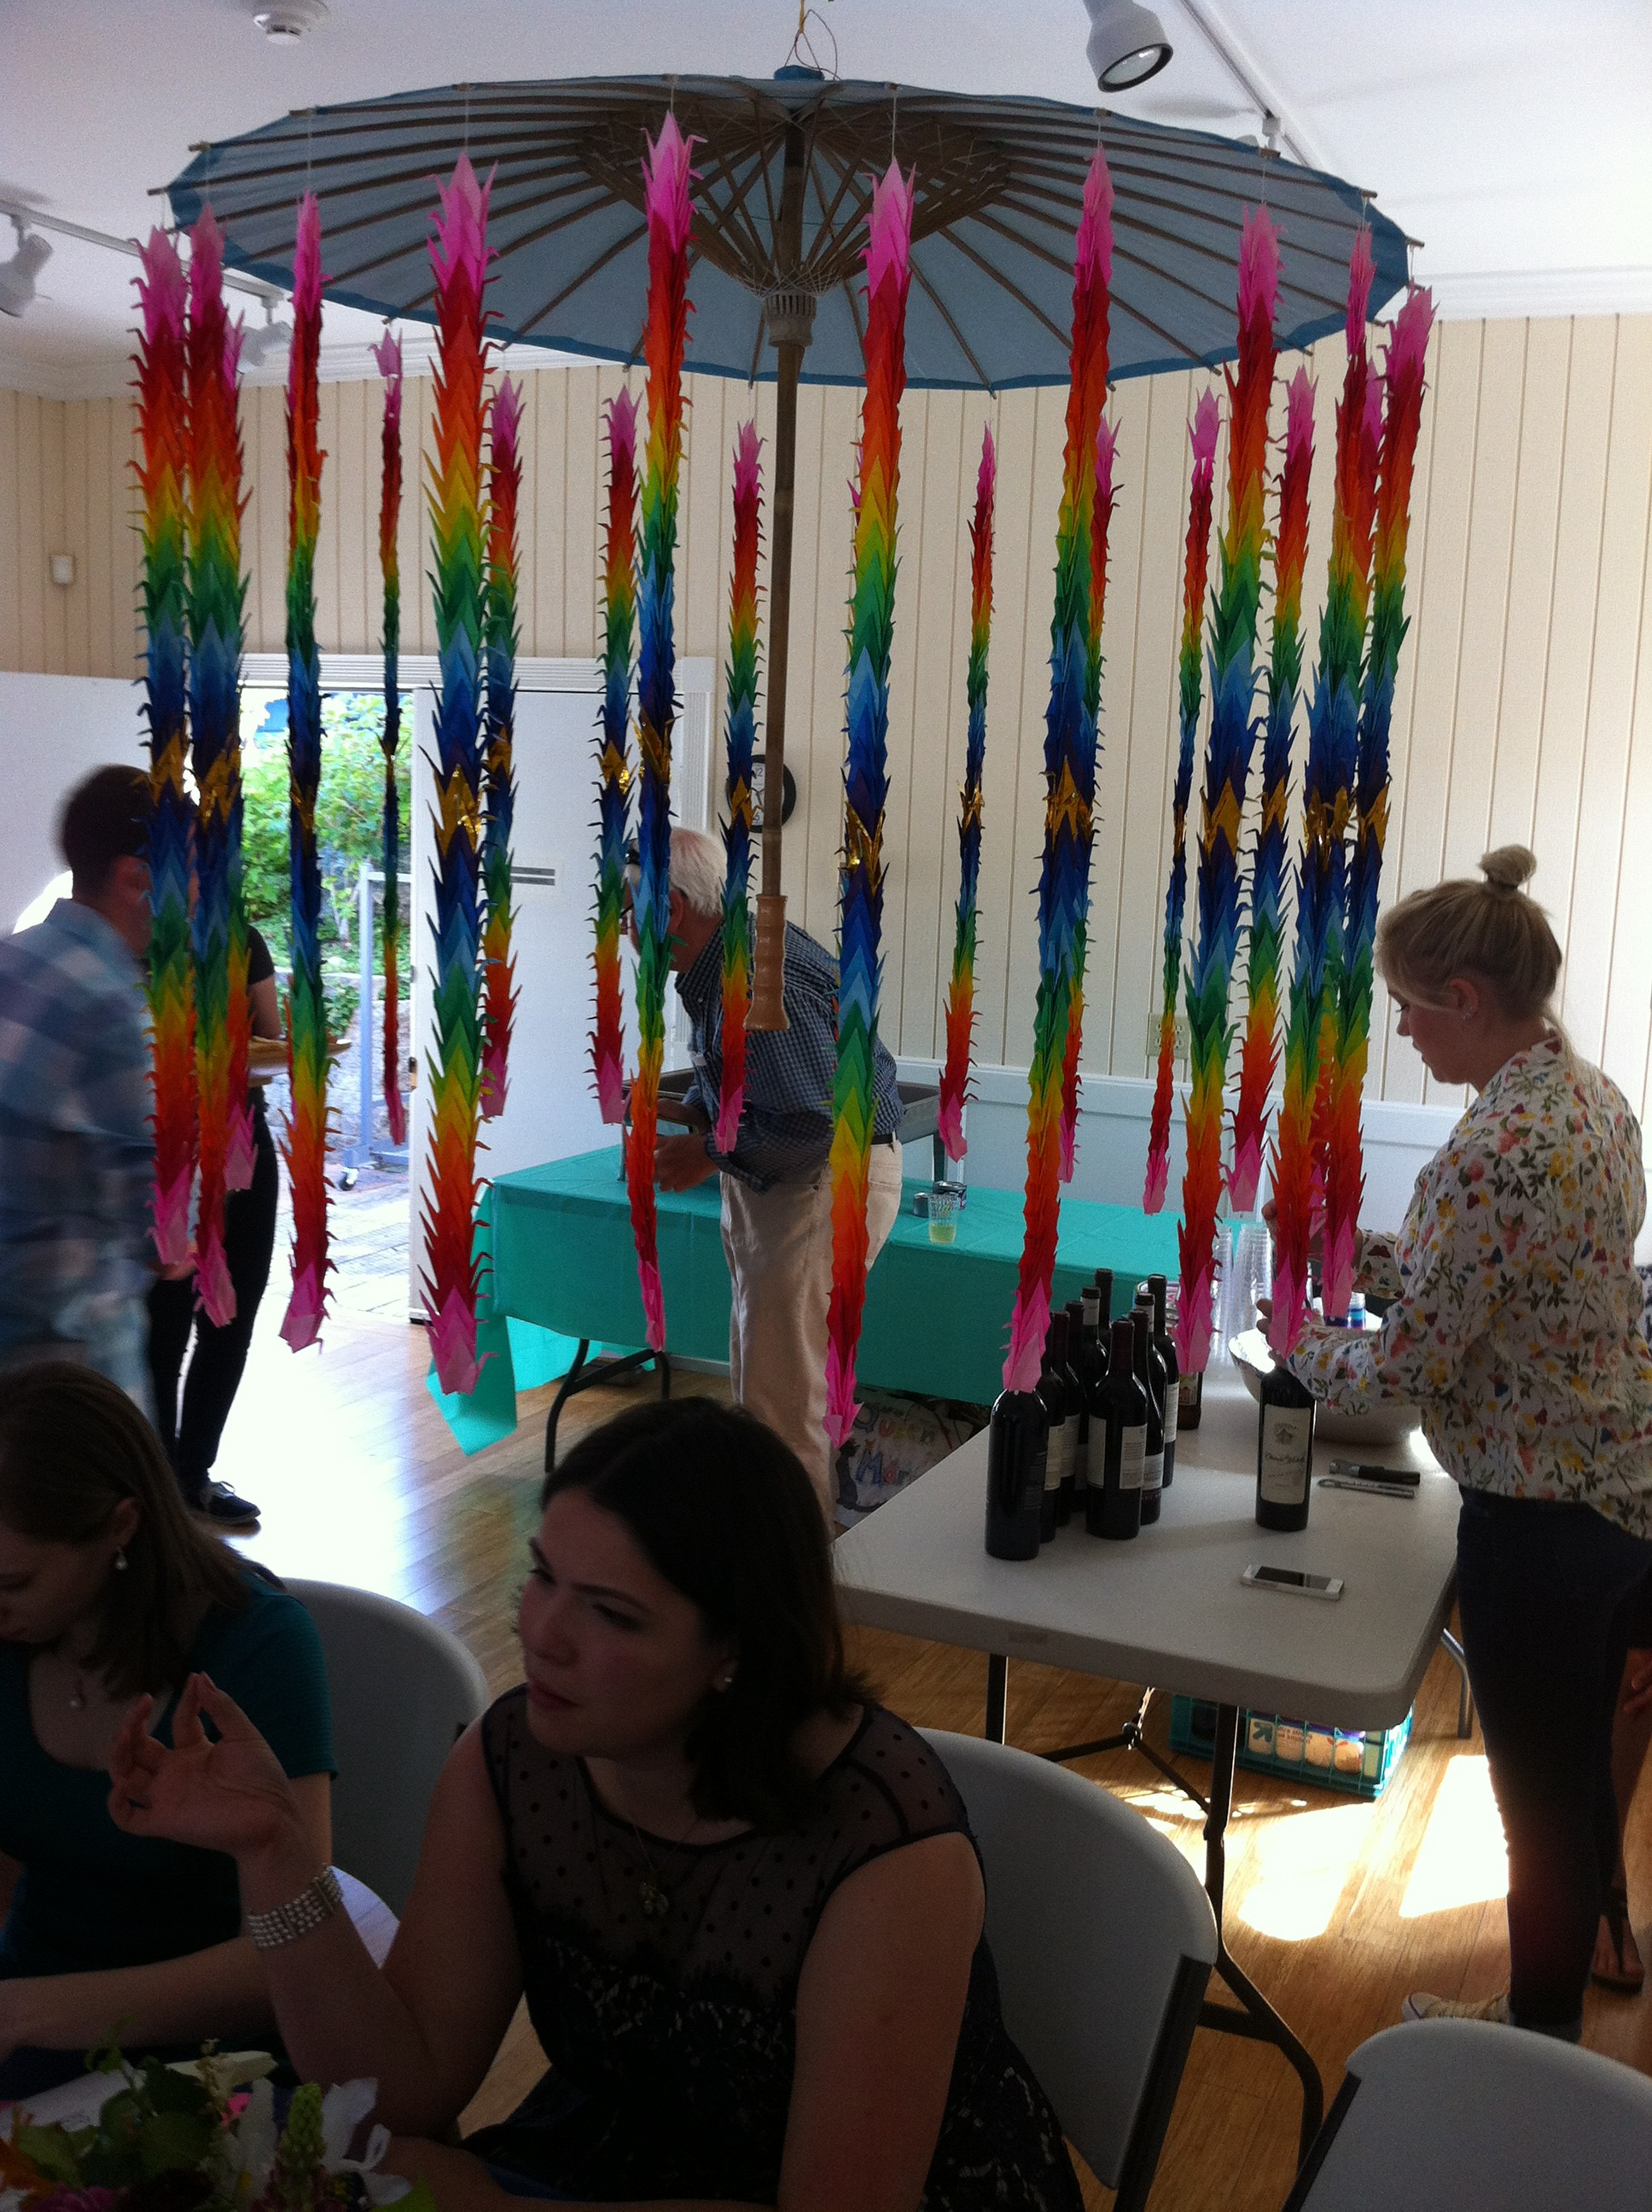 My niece sitting beneath the umbrella adorned with 1,000 paper cranes at her wedding rehearsal dinner.